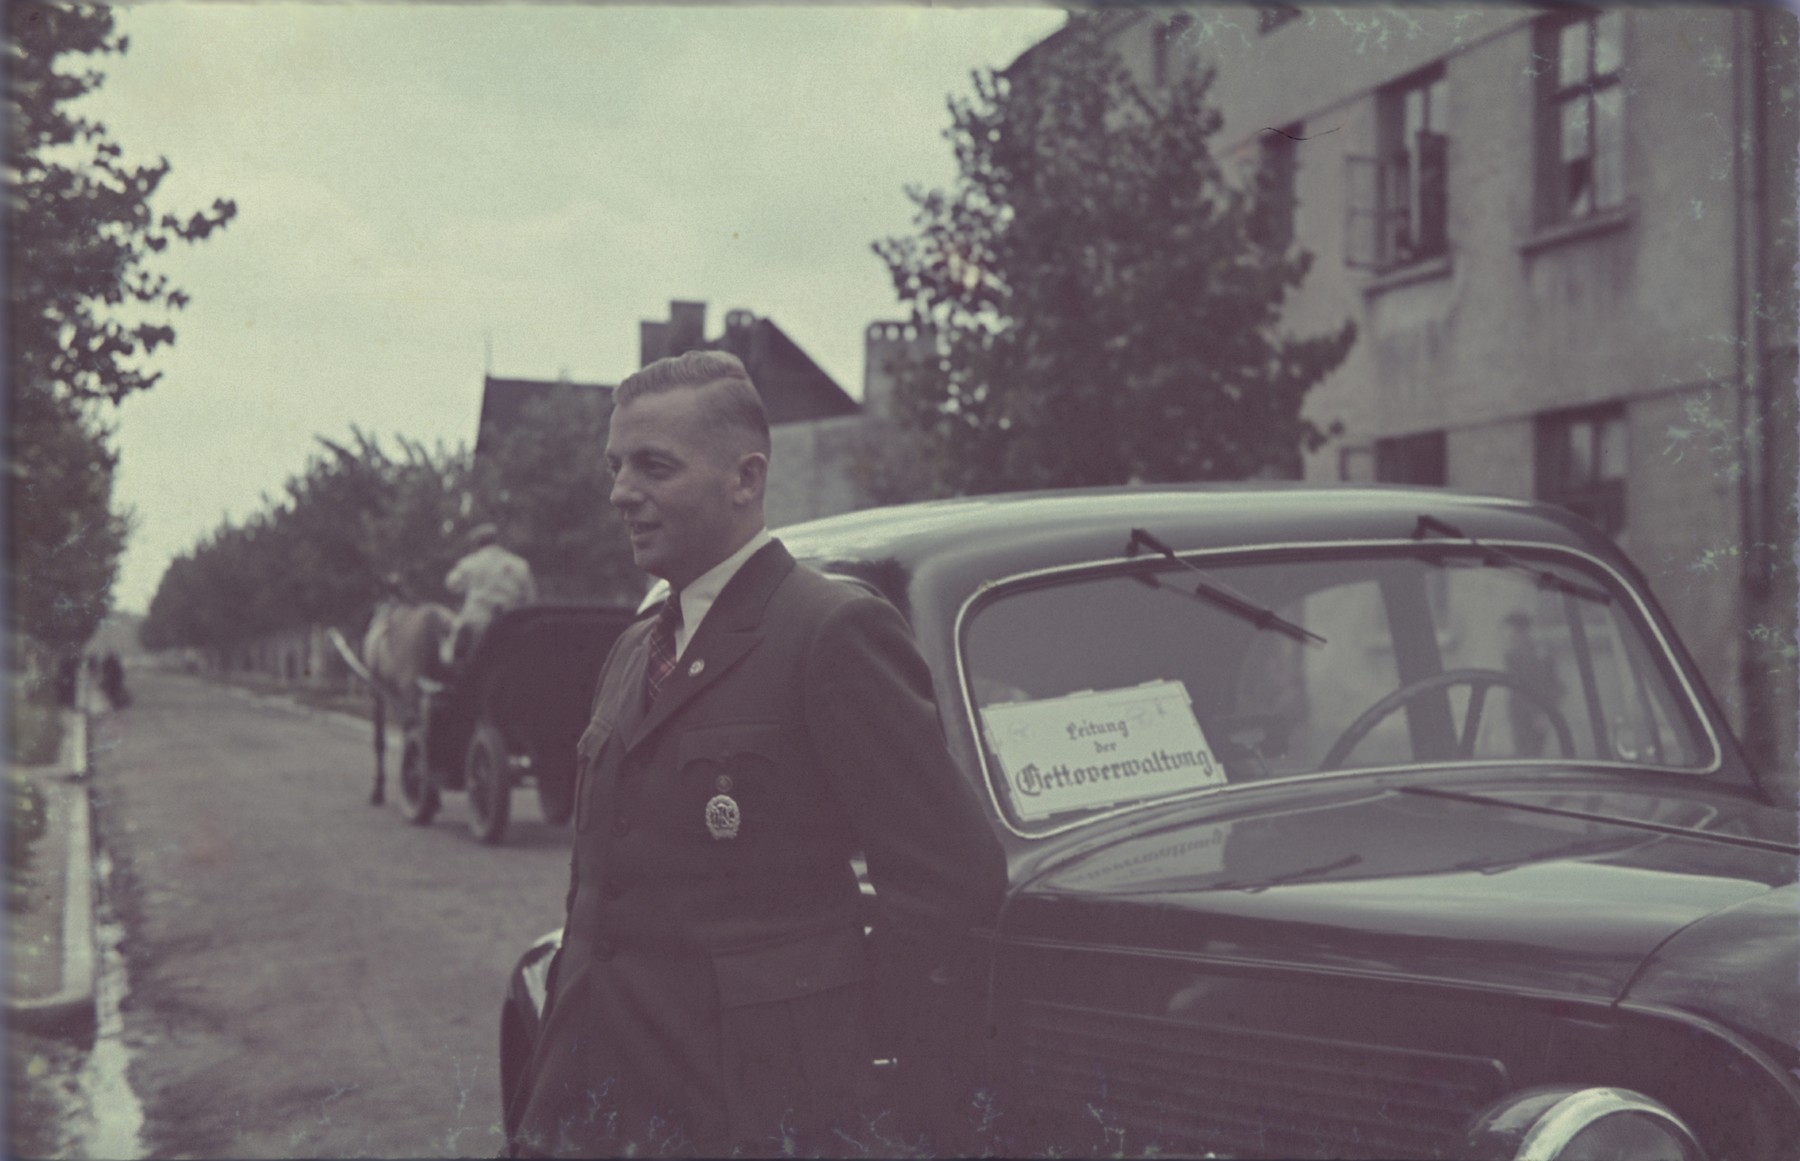 """Hans Biebow, the Nazi administrator of  the Lodz ghetto,  poses in front of a car in the Lodz ghetto.  Original German caption: """"Herr Biebow"""" (Mr. Biebow), #155."""